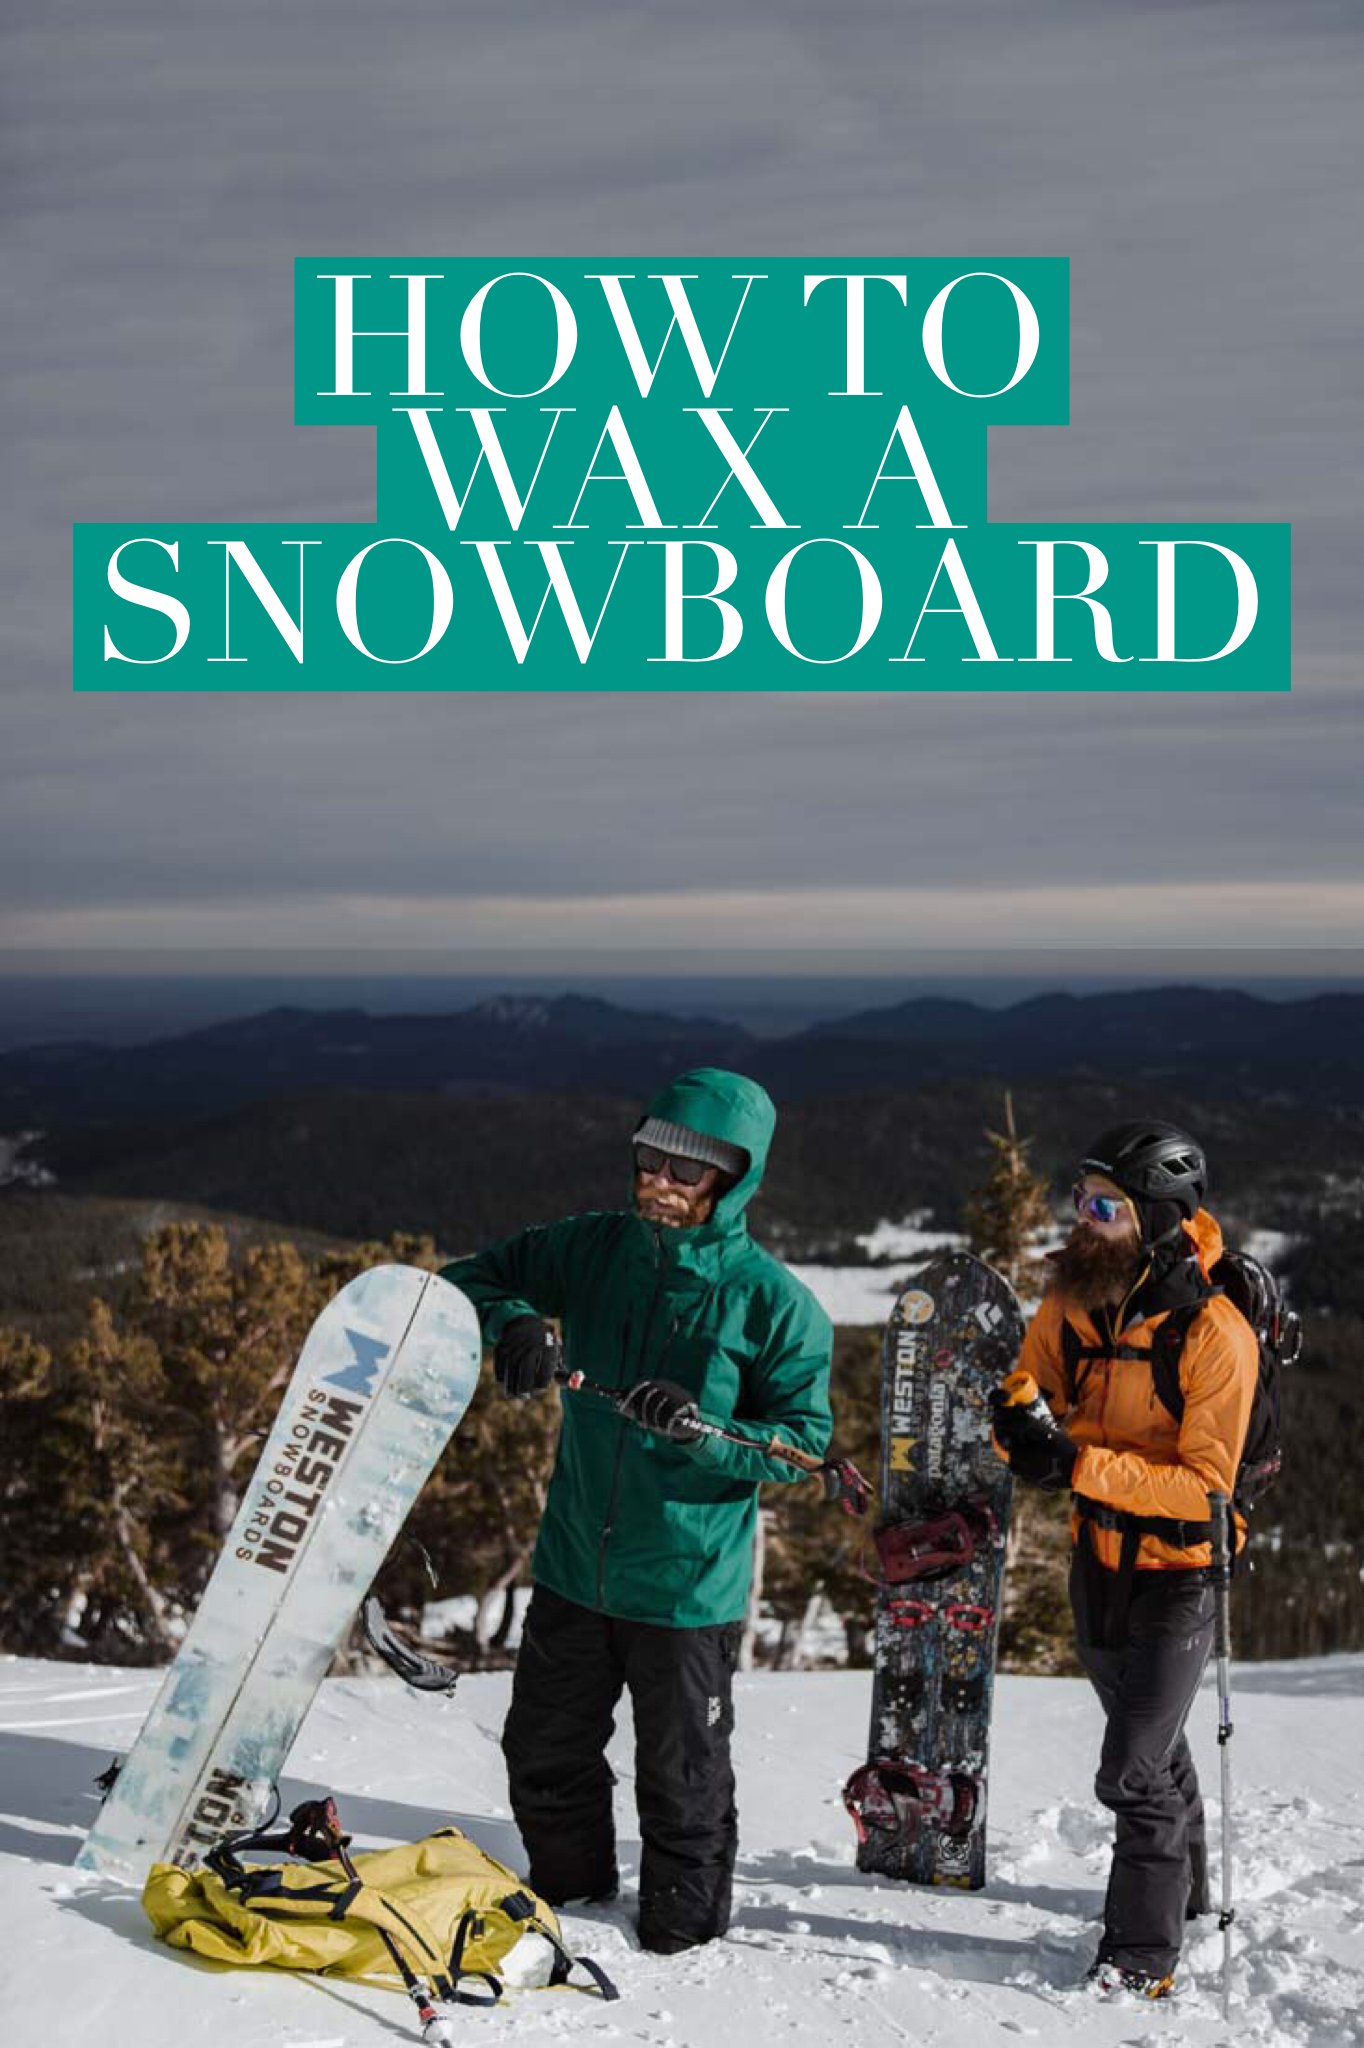 Waxing Your Snowboard Or Skis At Home Is Easy And Fun Snowboard Acadia National Park Camping Ski And Snowboard